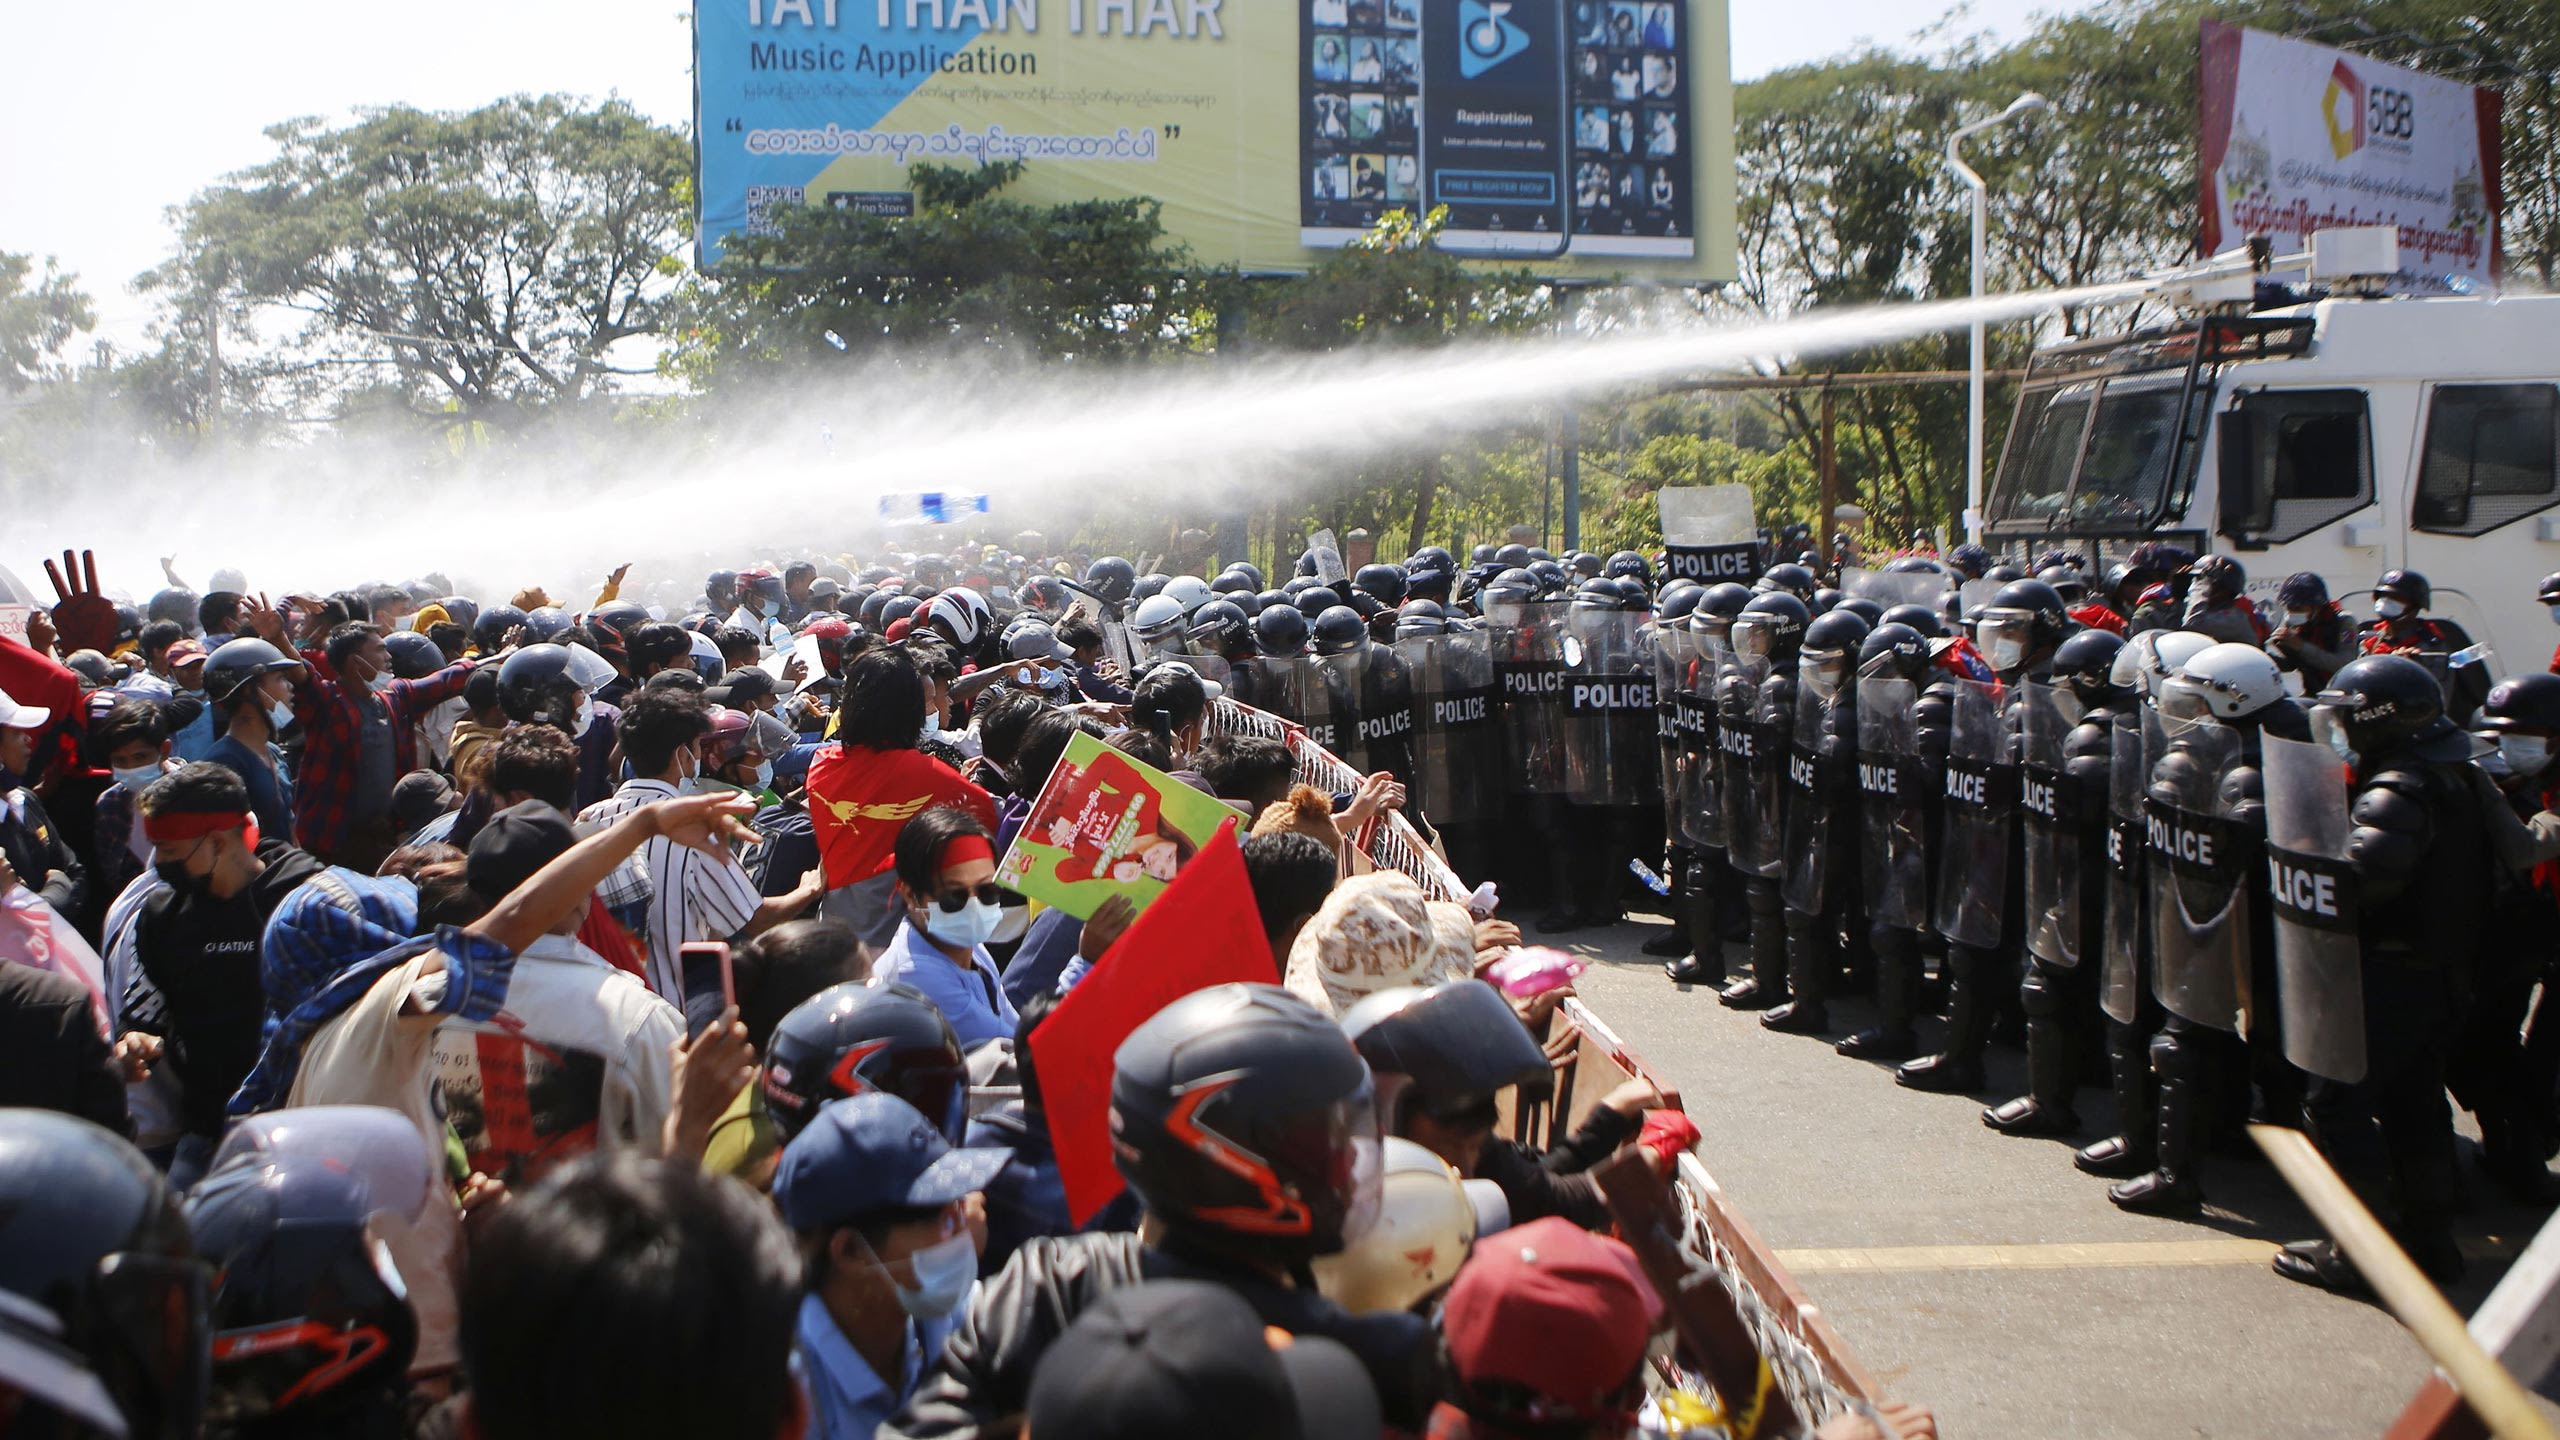 Water cannon used on Myanmar protesters